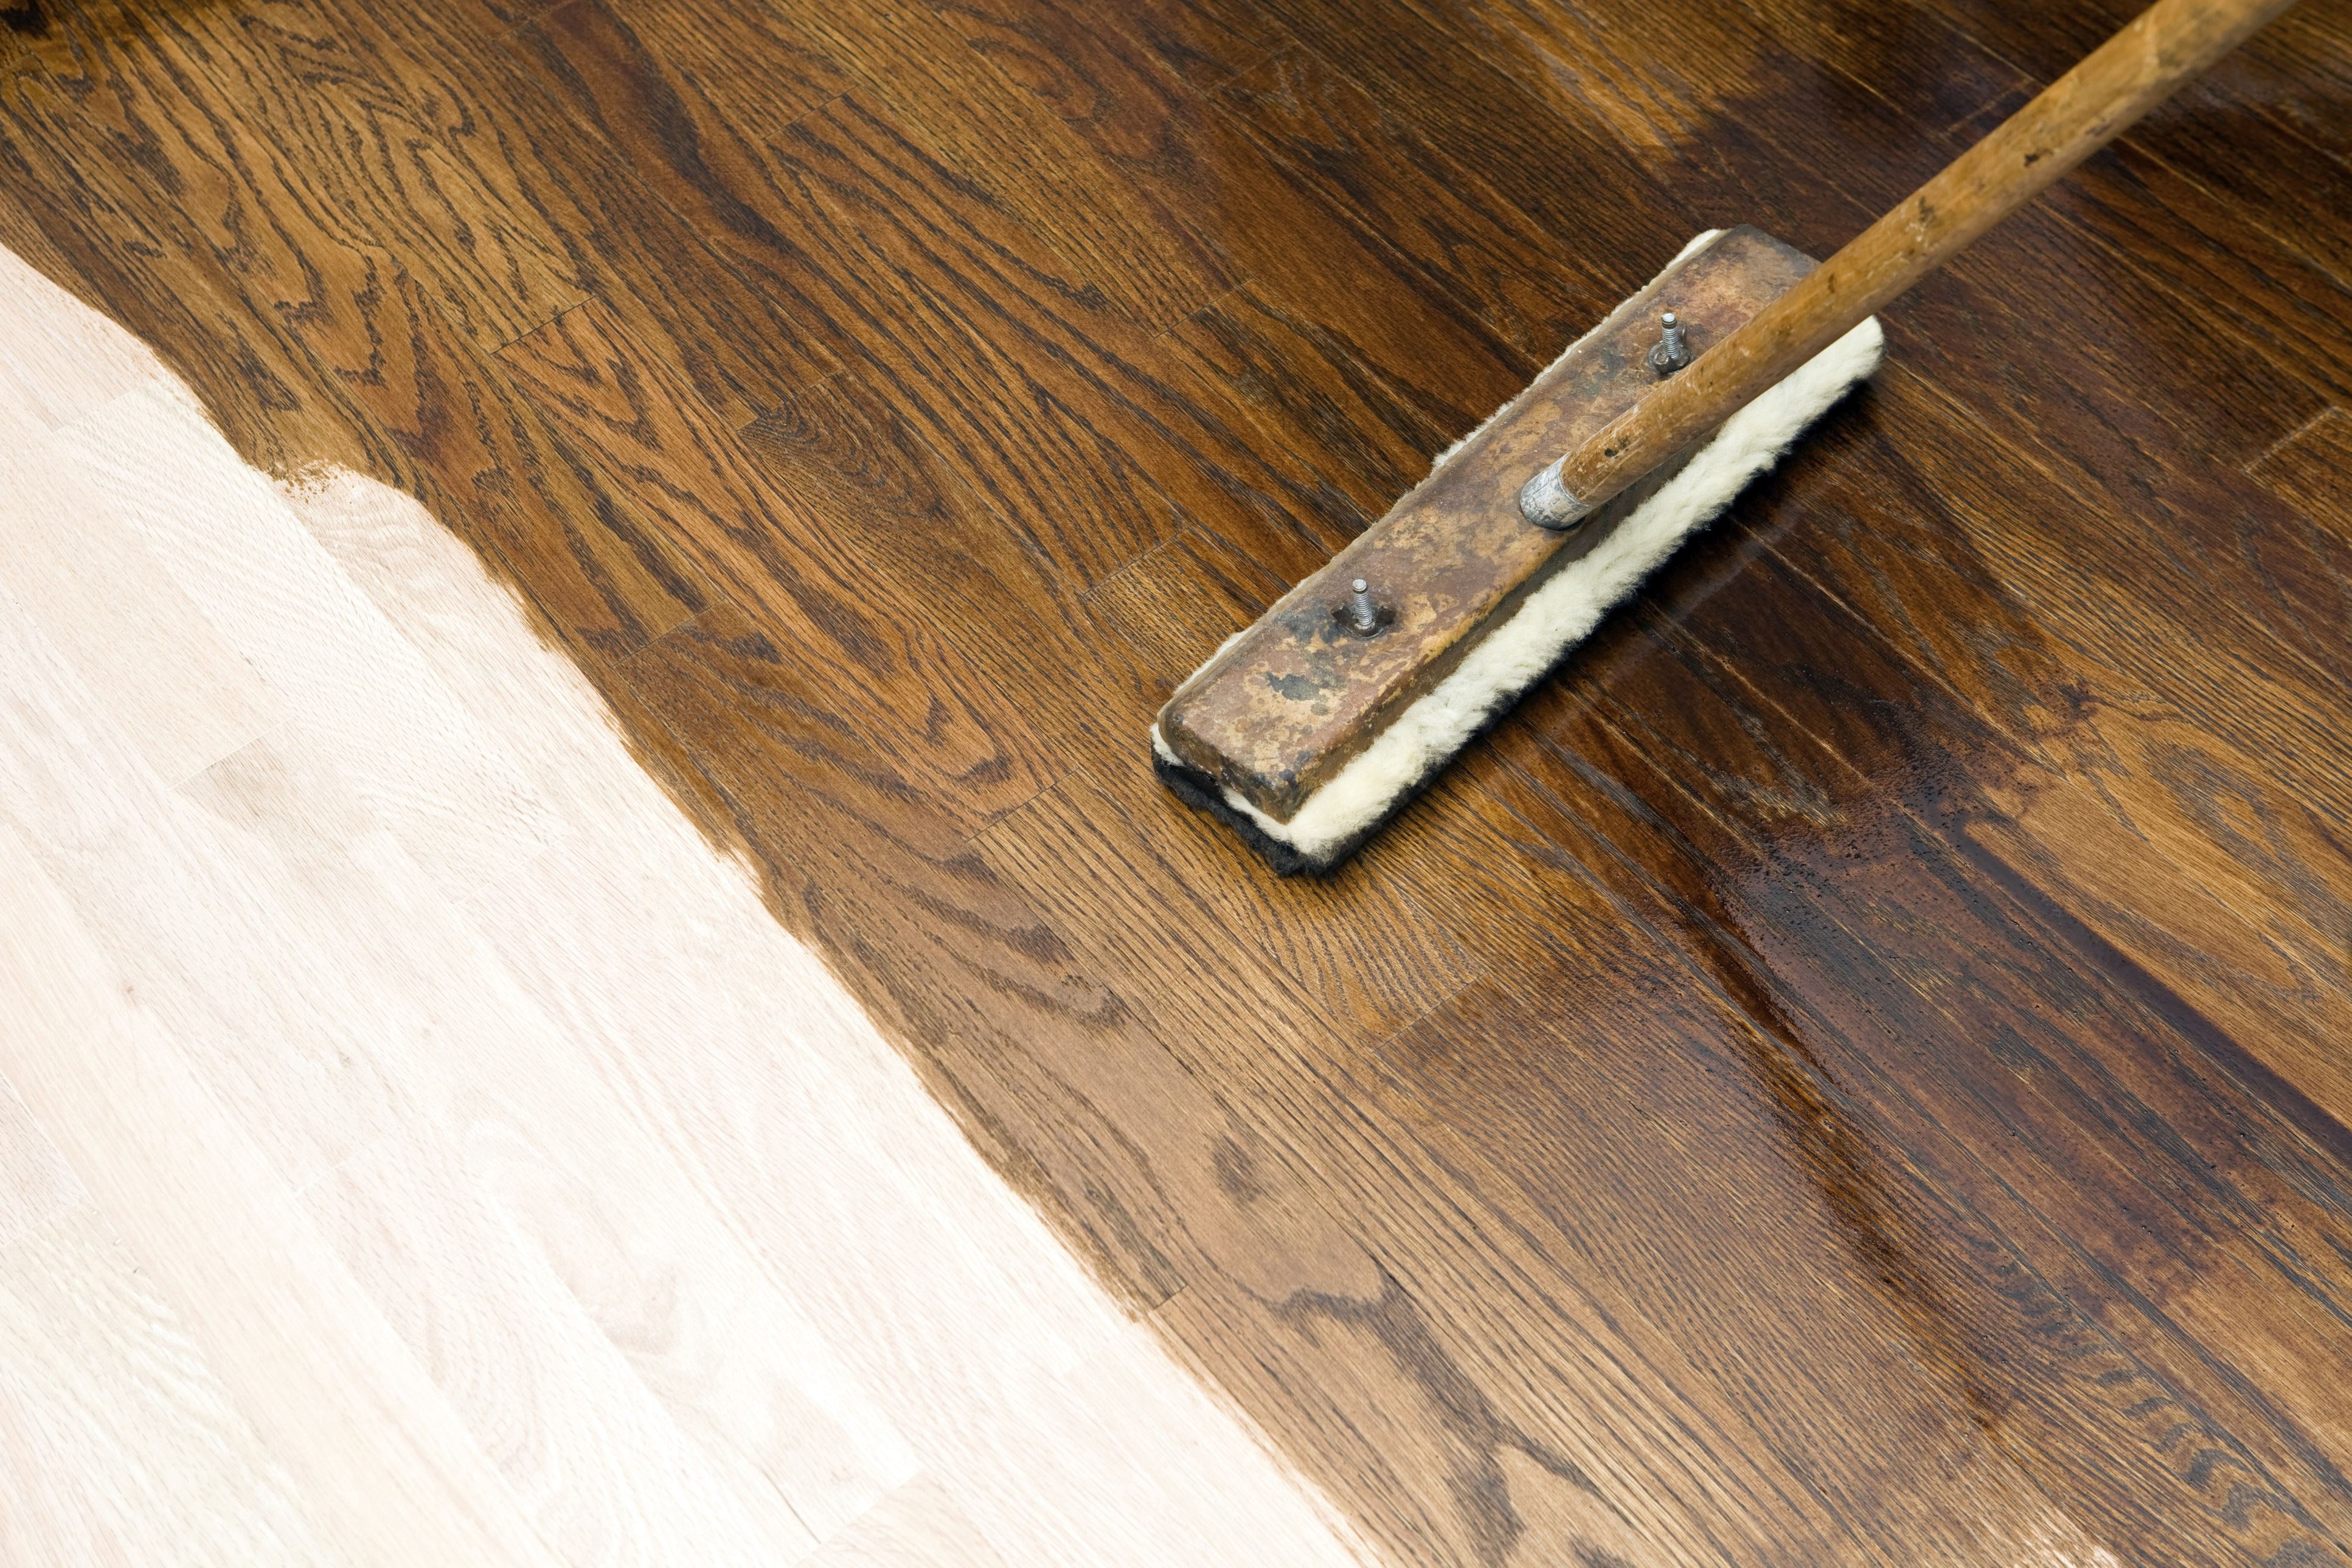 how to protect newly refinished hardwood floors of how to build equity what it means to own more of your home in dark stain application on new oak hardwood floor 184881406 573e139f5f9b58723d7a472d